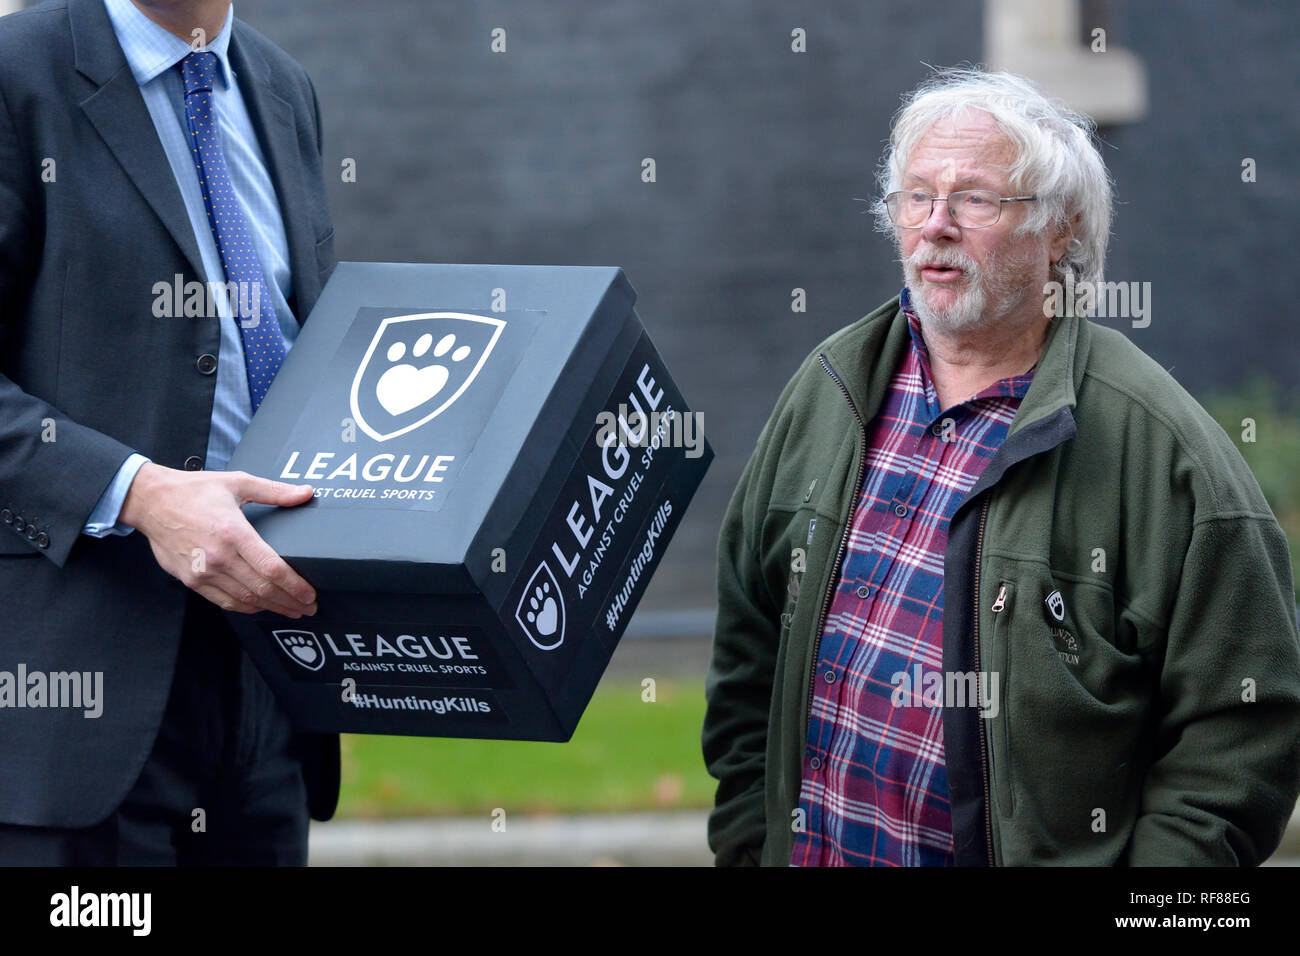 Bill Oddie and members of the League Against Cruel Sports delivering a petition to 10 Downing Street, 19th December 2018 - Stock Image